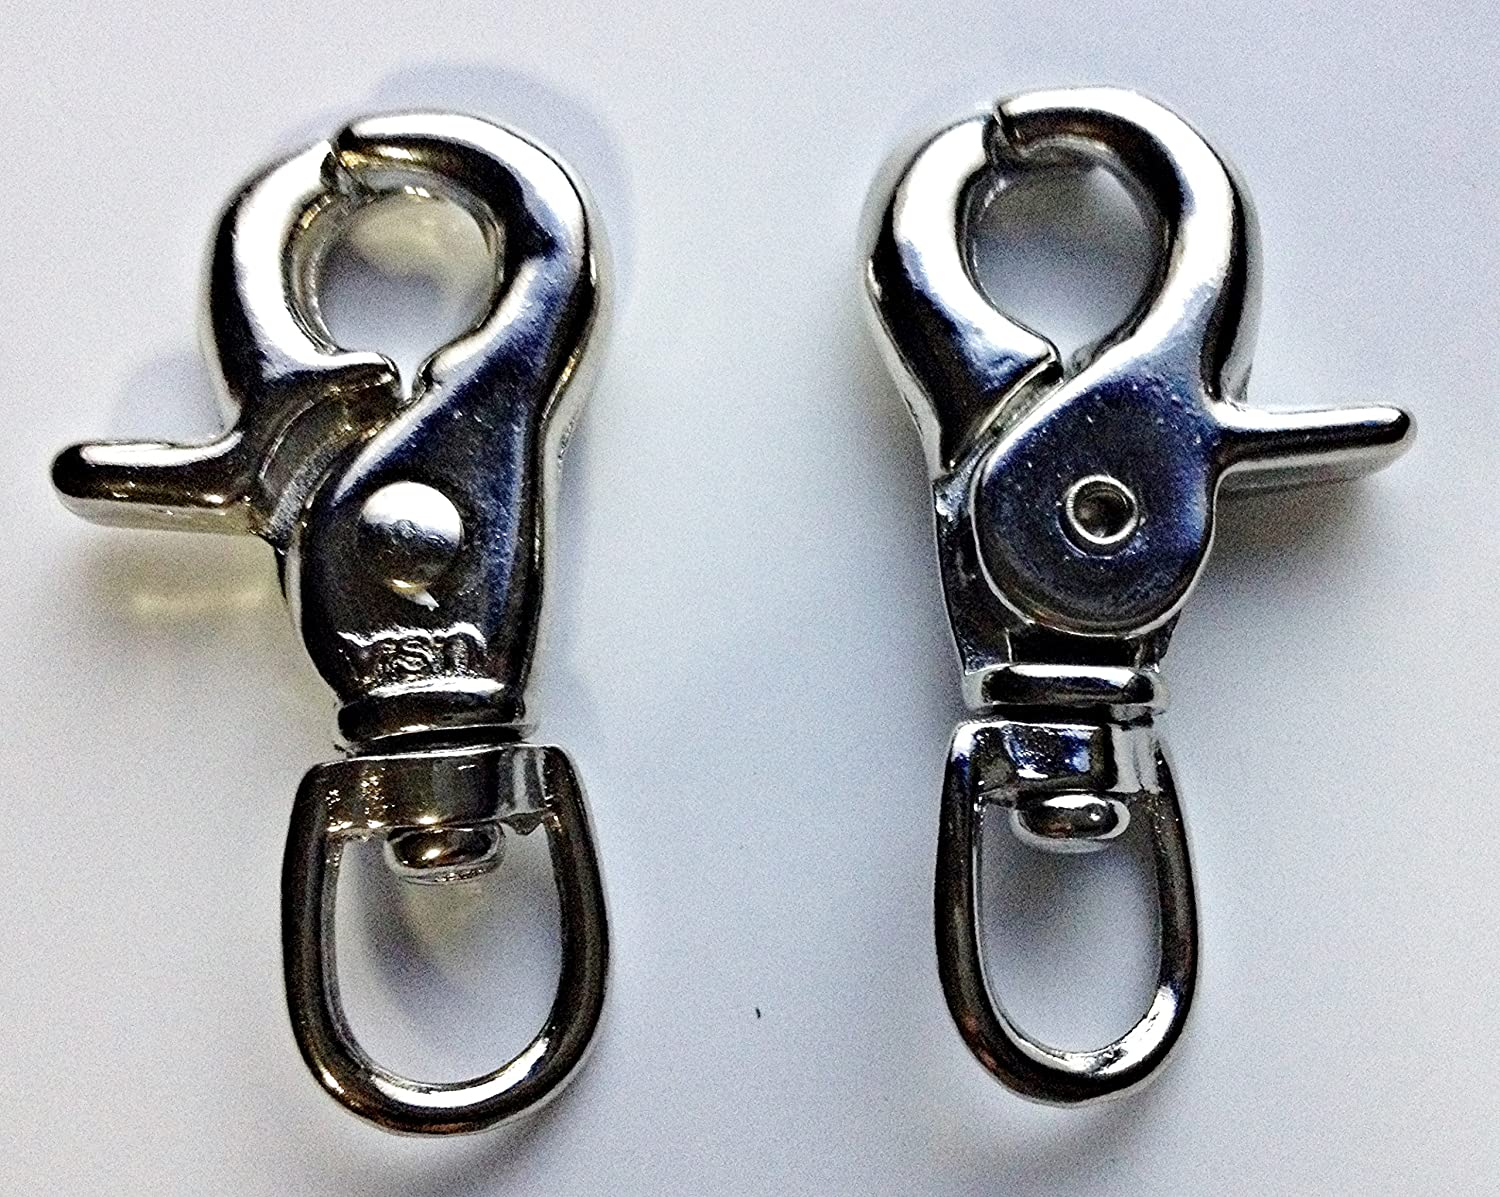 Power of Dream Door Lock Cage Claw Clip Financial sales sale Max 63% OFF Belt Prevent Trigge Hook